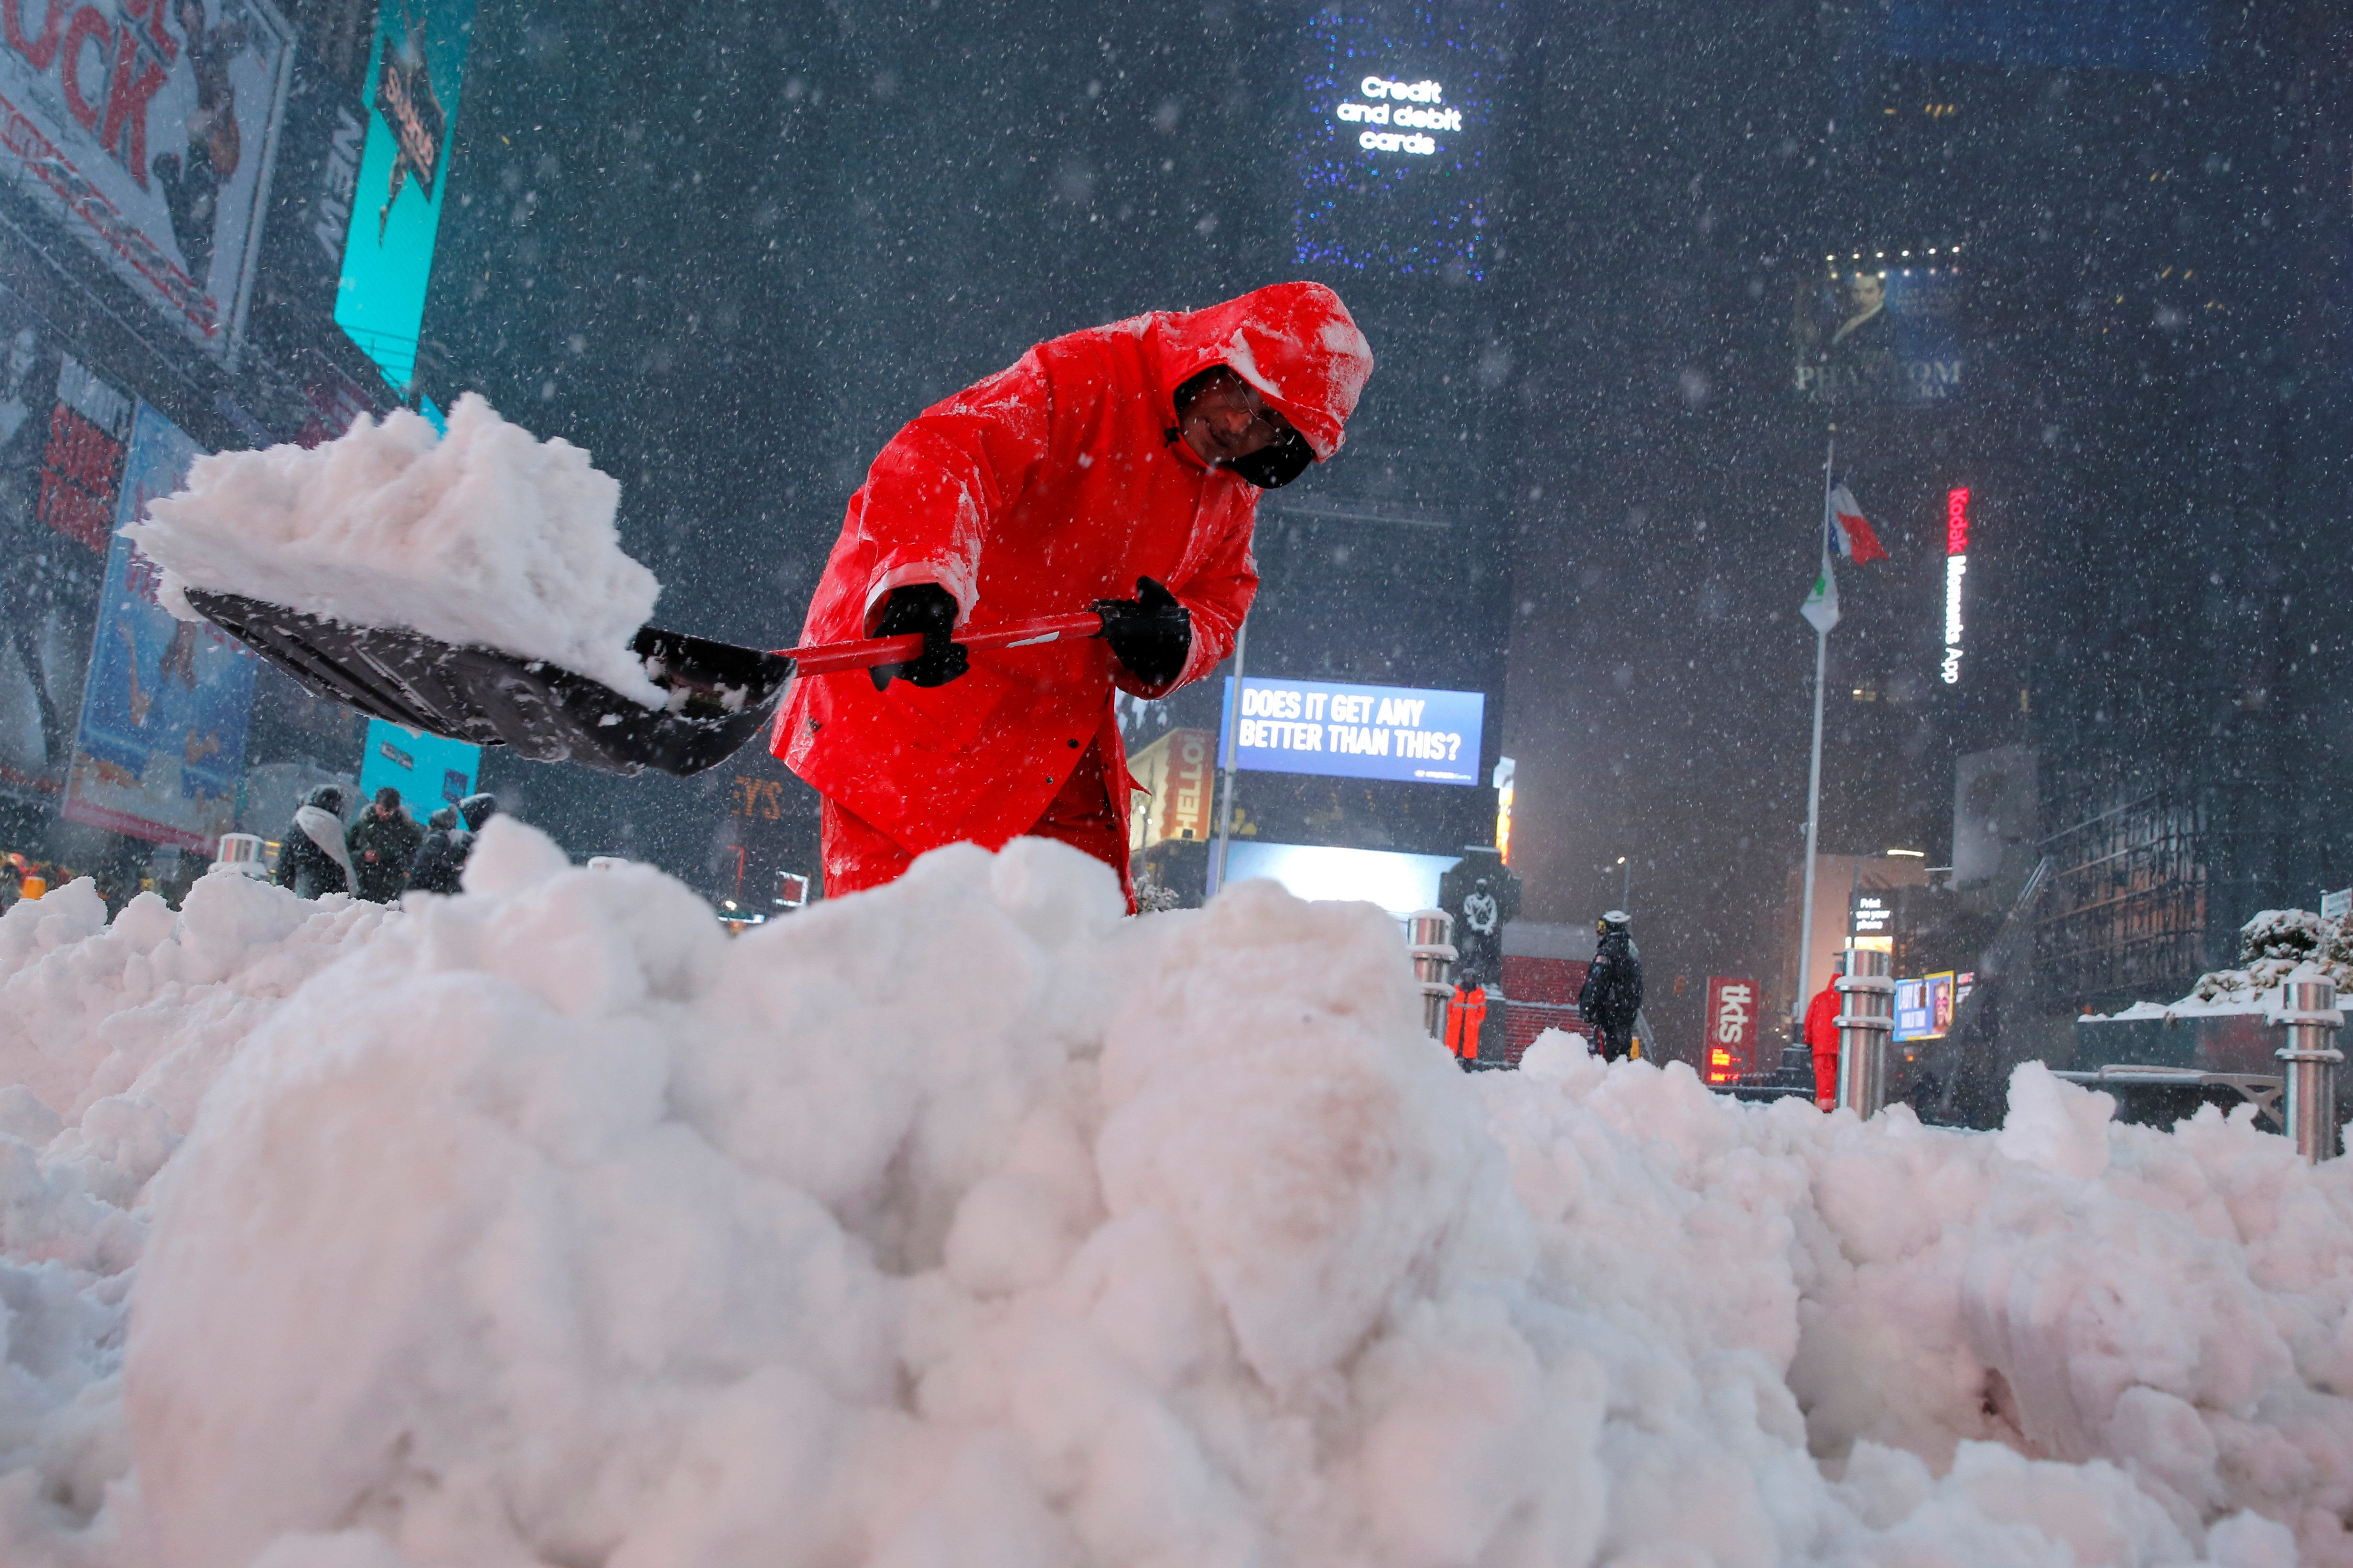 A worker clears snow in Times Square as snow falls in Manhattan, New York, U.S., March 14, 2017.  REUTERS/Andrew Kelly